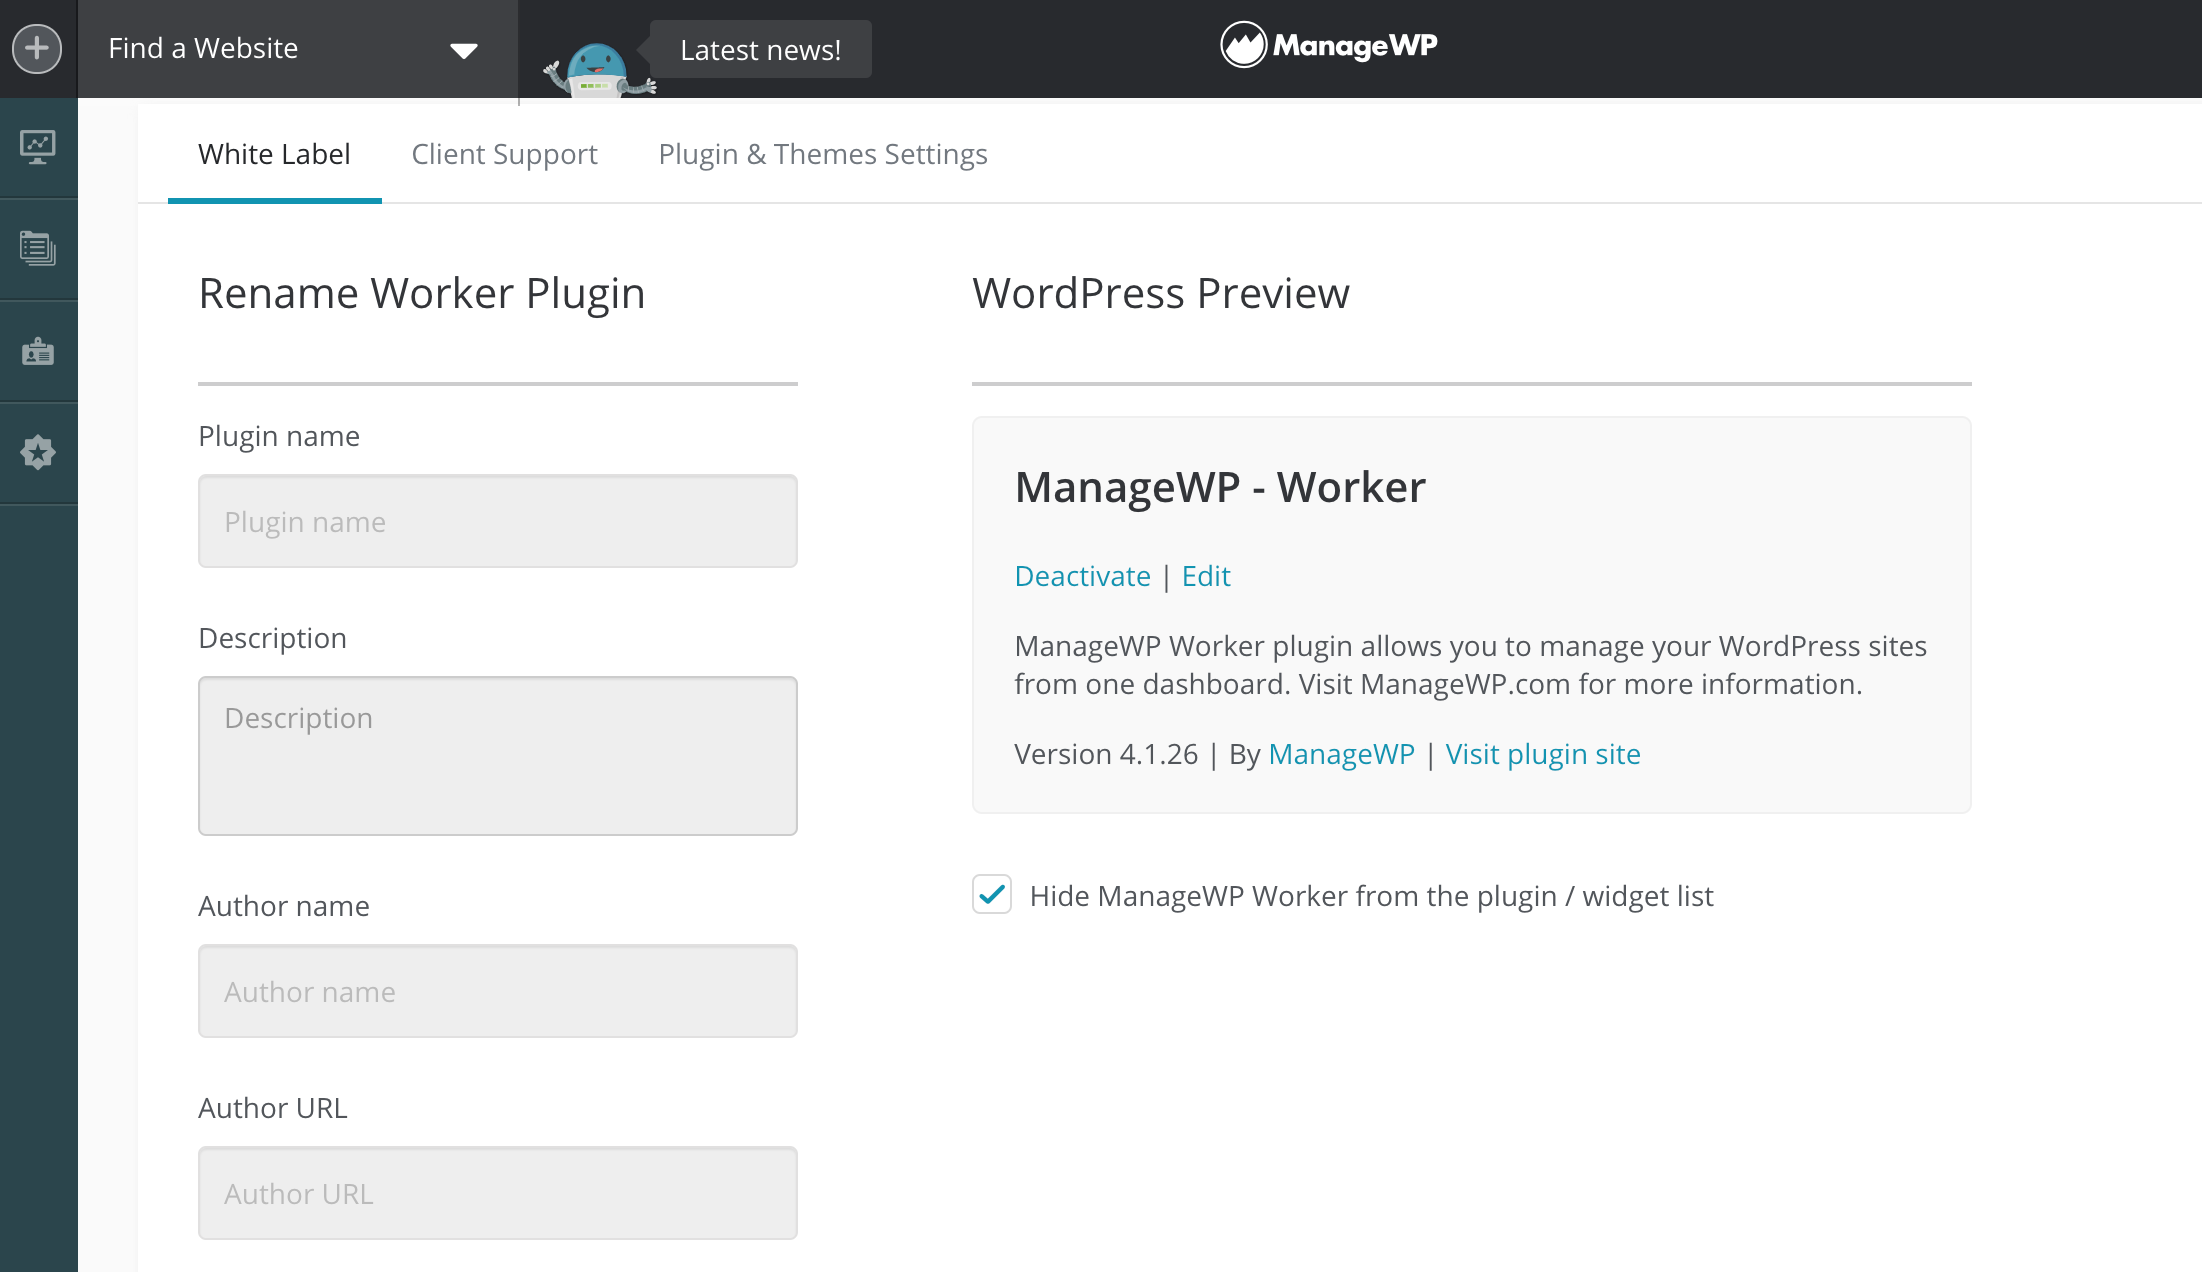 Renaming the ManageWP Worker plugin in the dashboard.